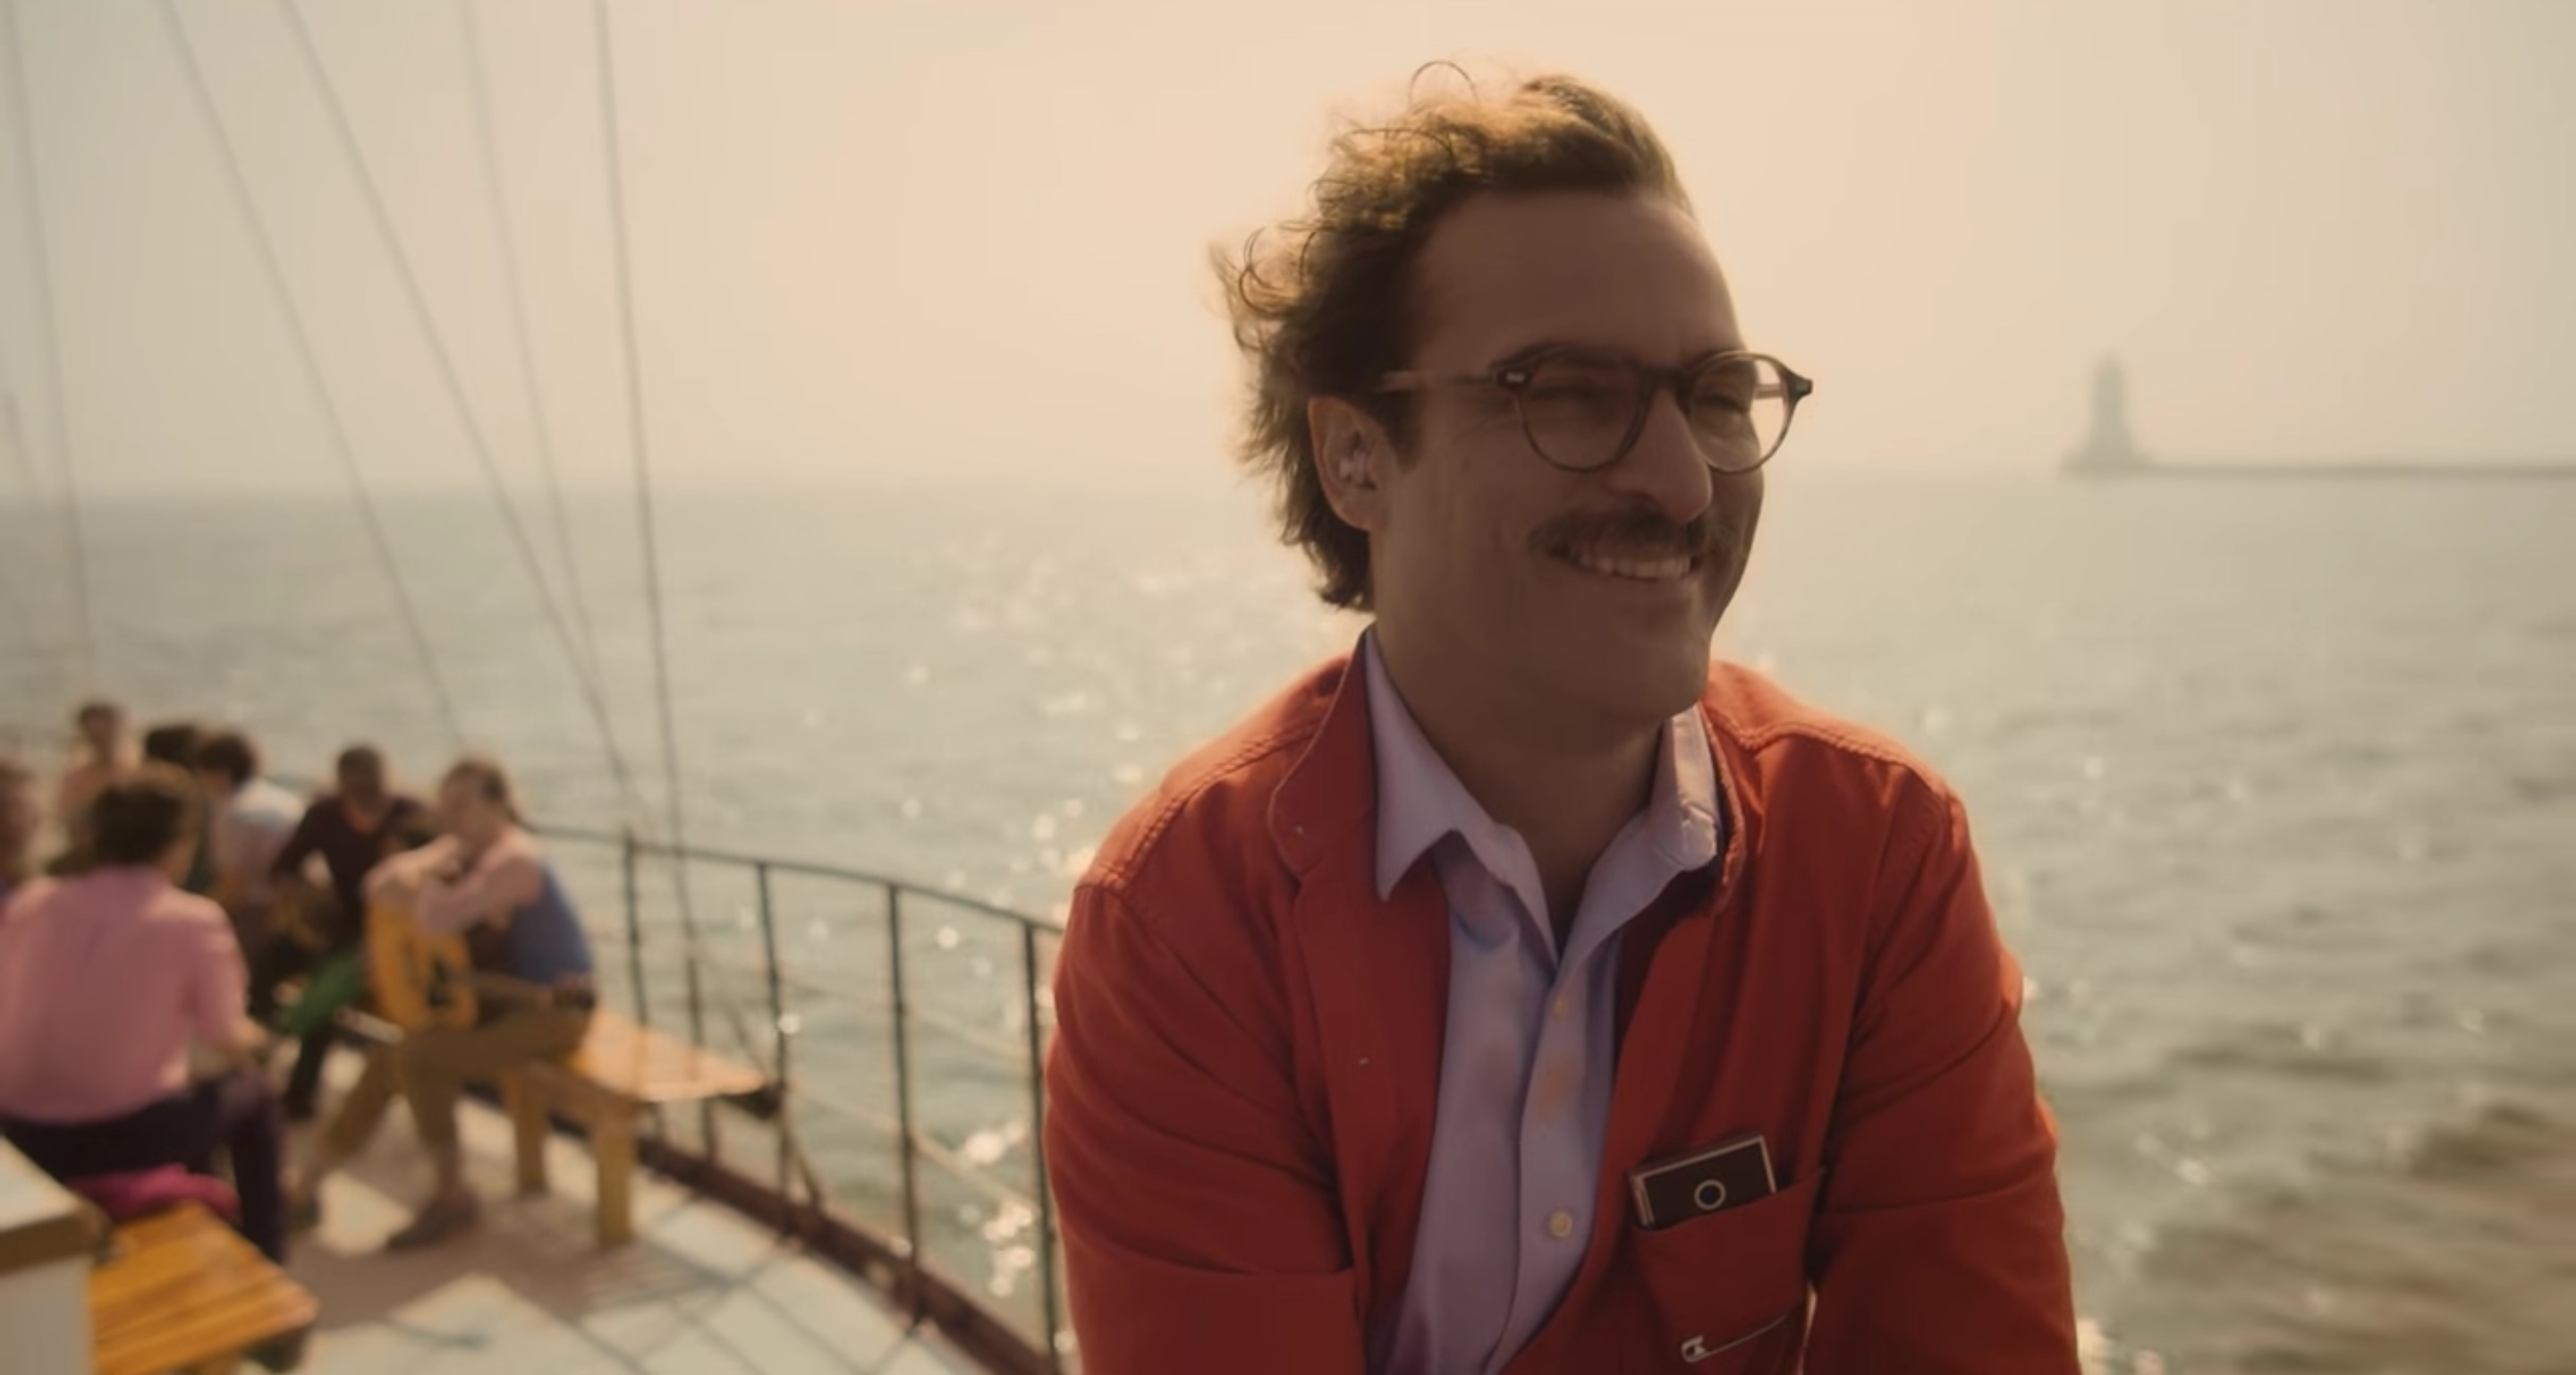 Joaquin Phoenix stars as Theodore Twombly in 'Her,' a film about a man that falls in love with an A.I. played by Scarlett Johansson.